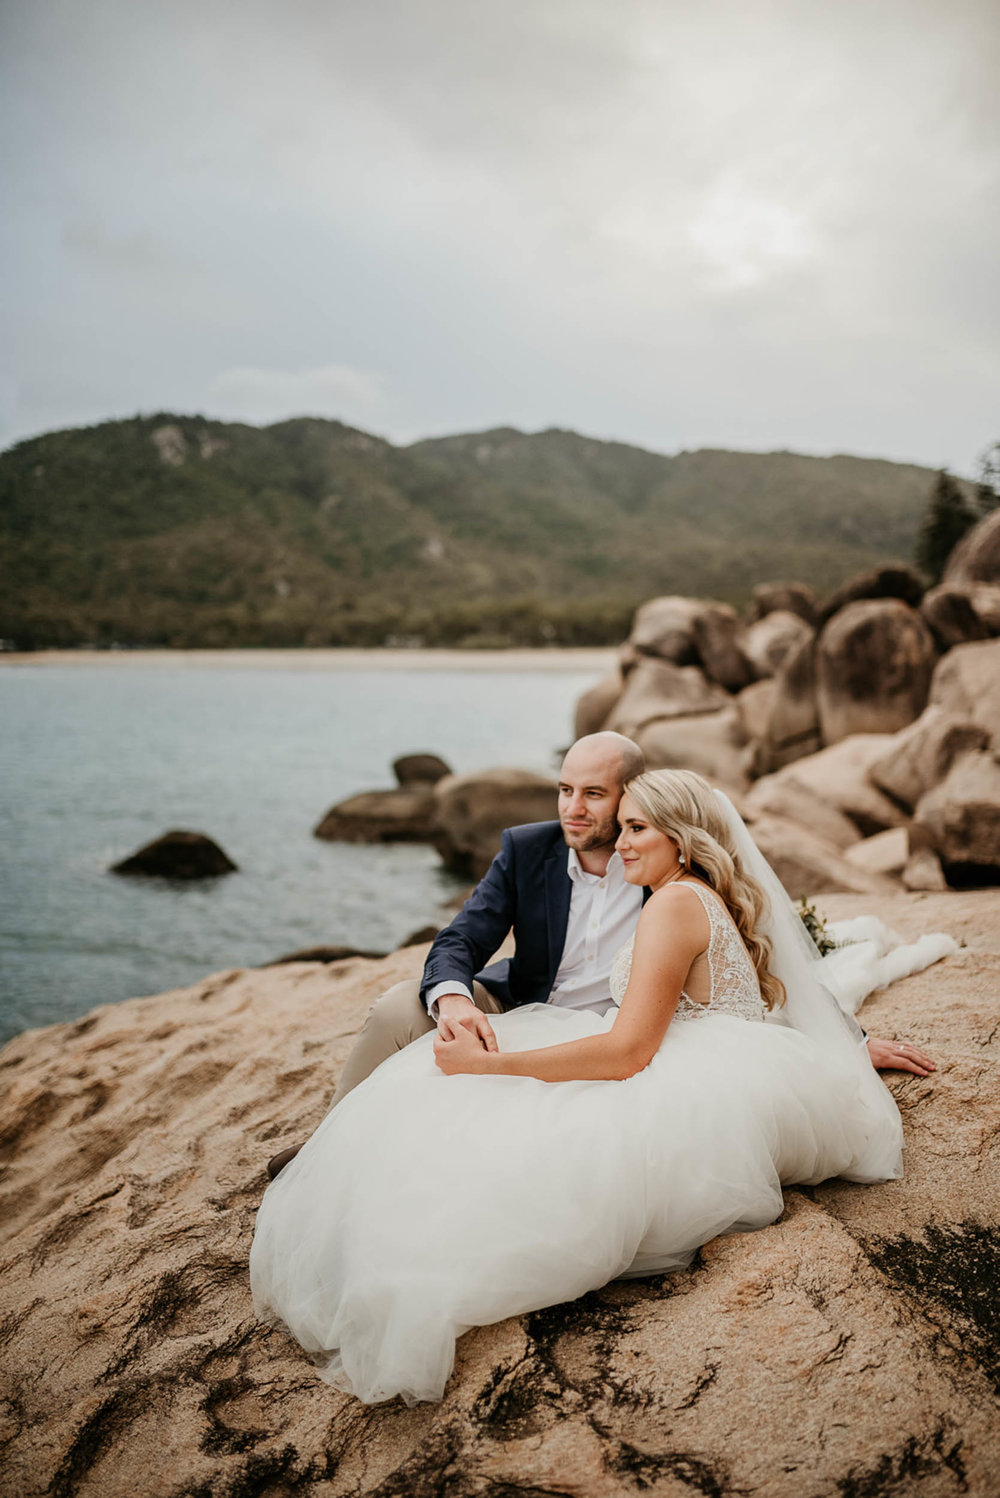 The Raw Photographer - Townsville Wedding Photographer - Magnetic Island - Destination Wedding - Dress White Lily Couture Bridal Nicole Milano-41.jpg